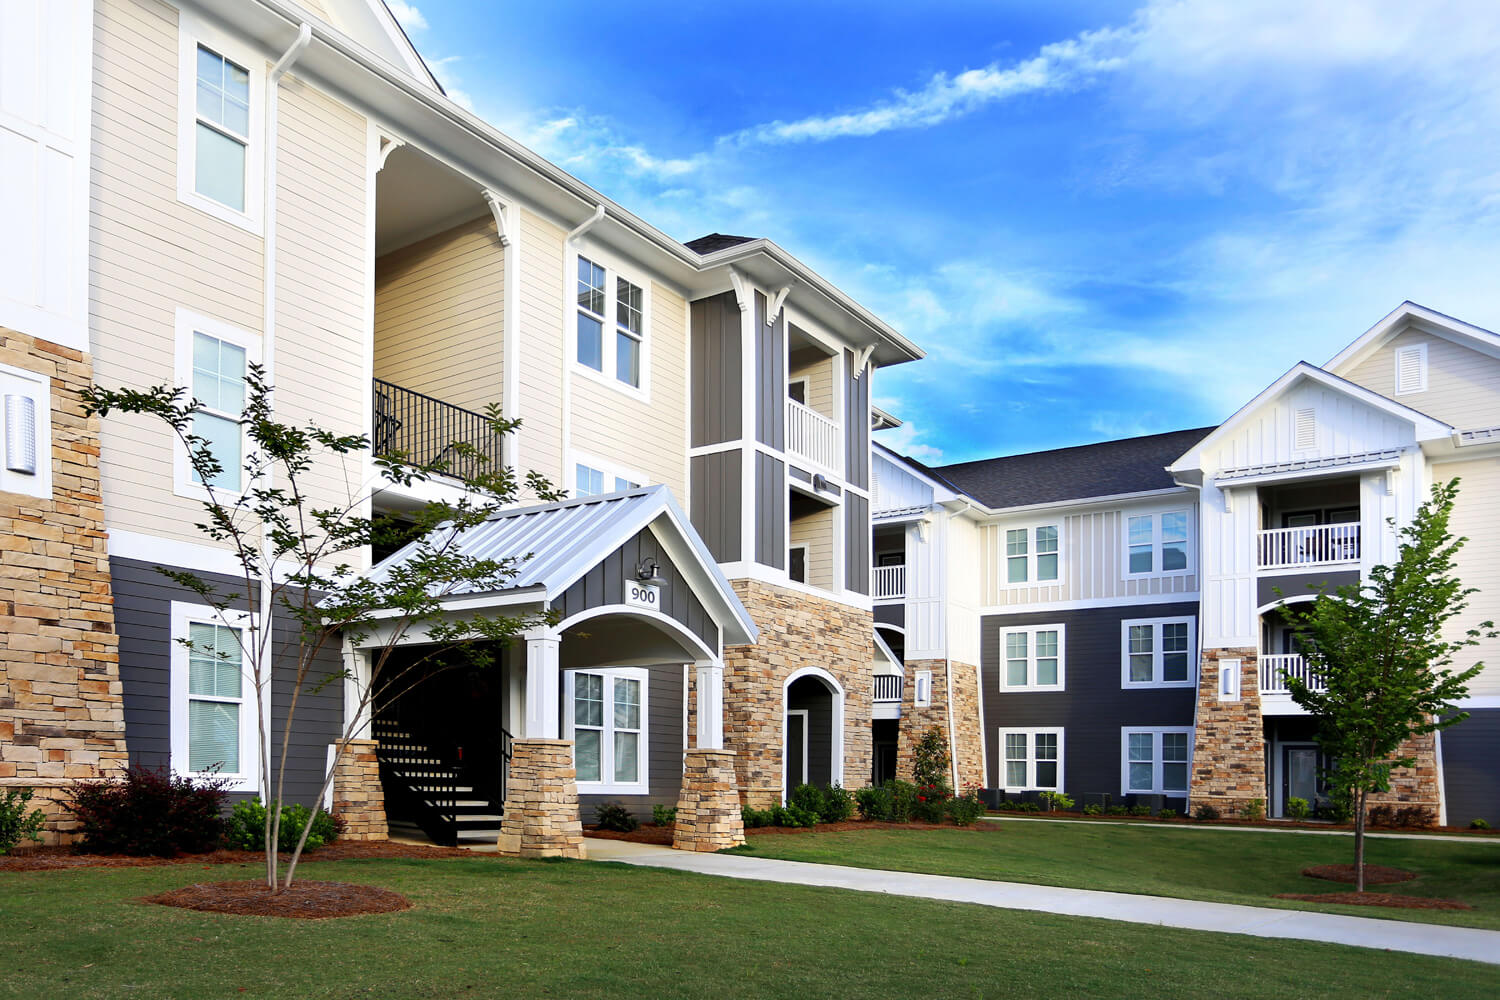 The Morgan Apartments Designed by Foshee Architecture - Exterior View of Sidewalk and Entry